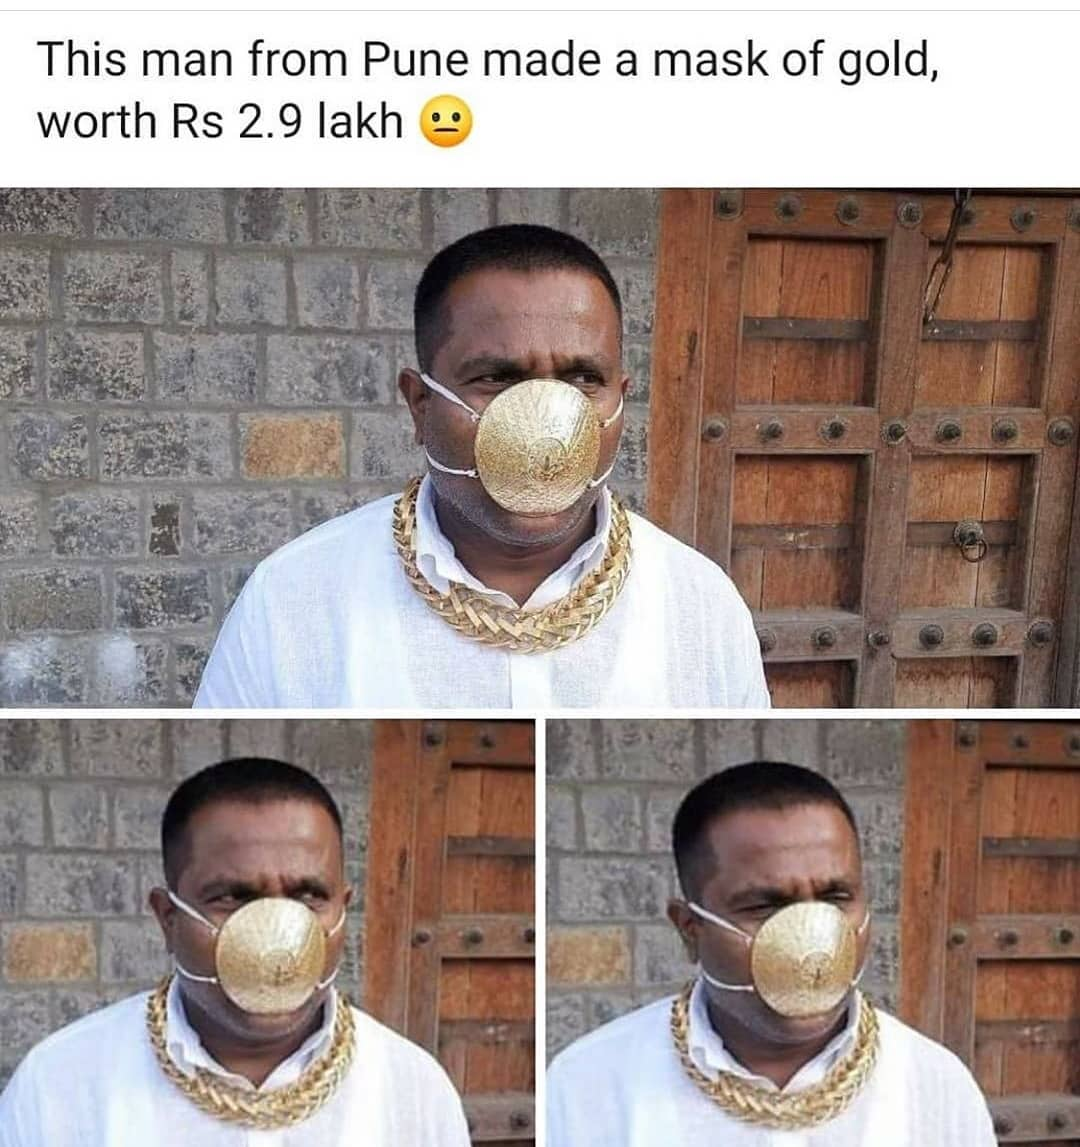 Gold mask worth Rs 2.90 lakh in Pune